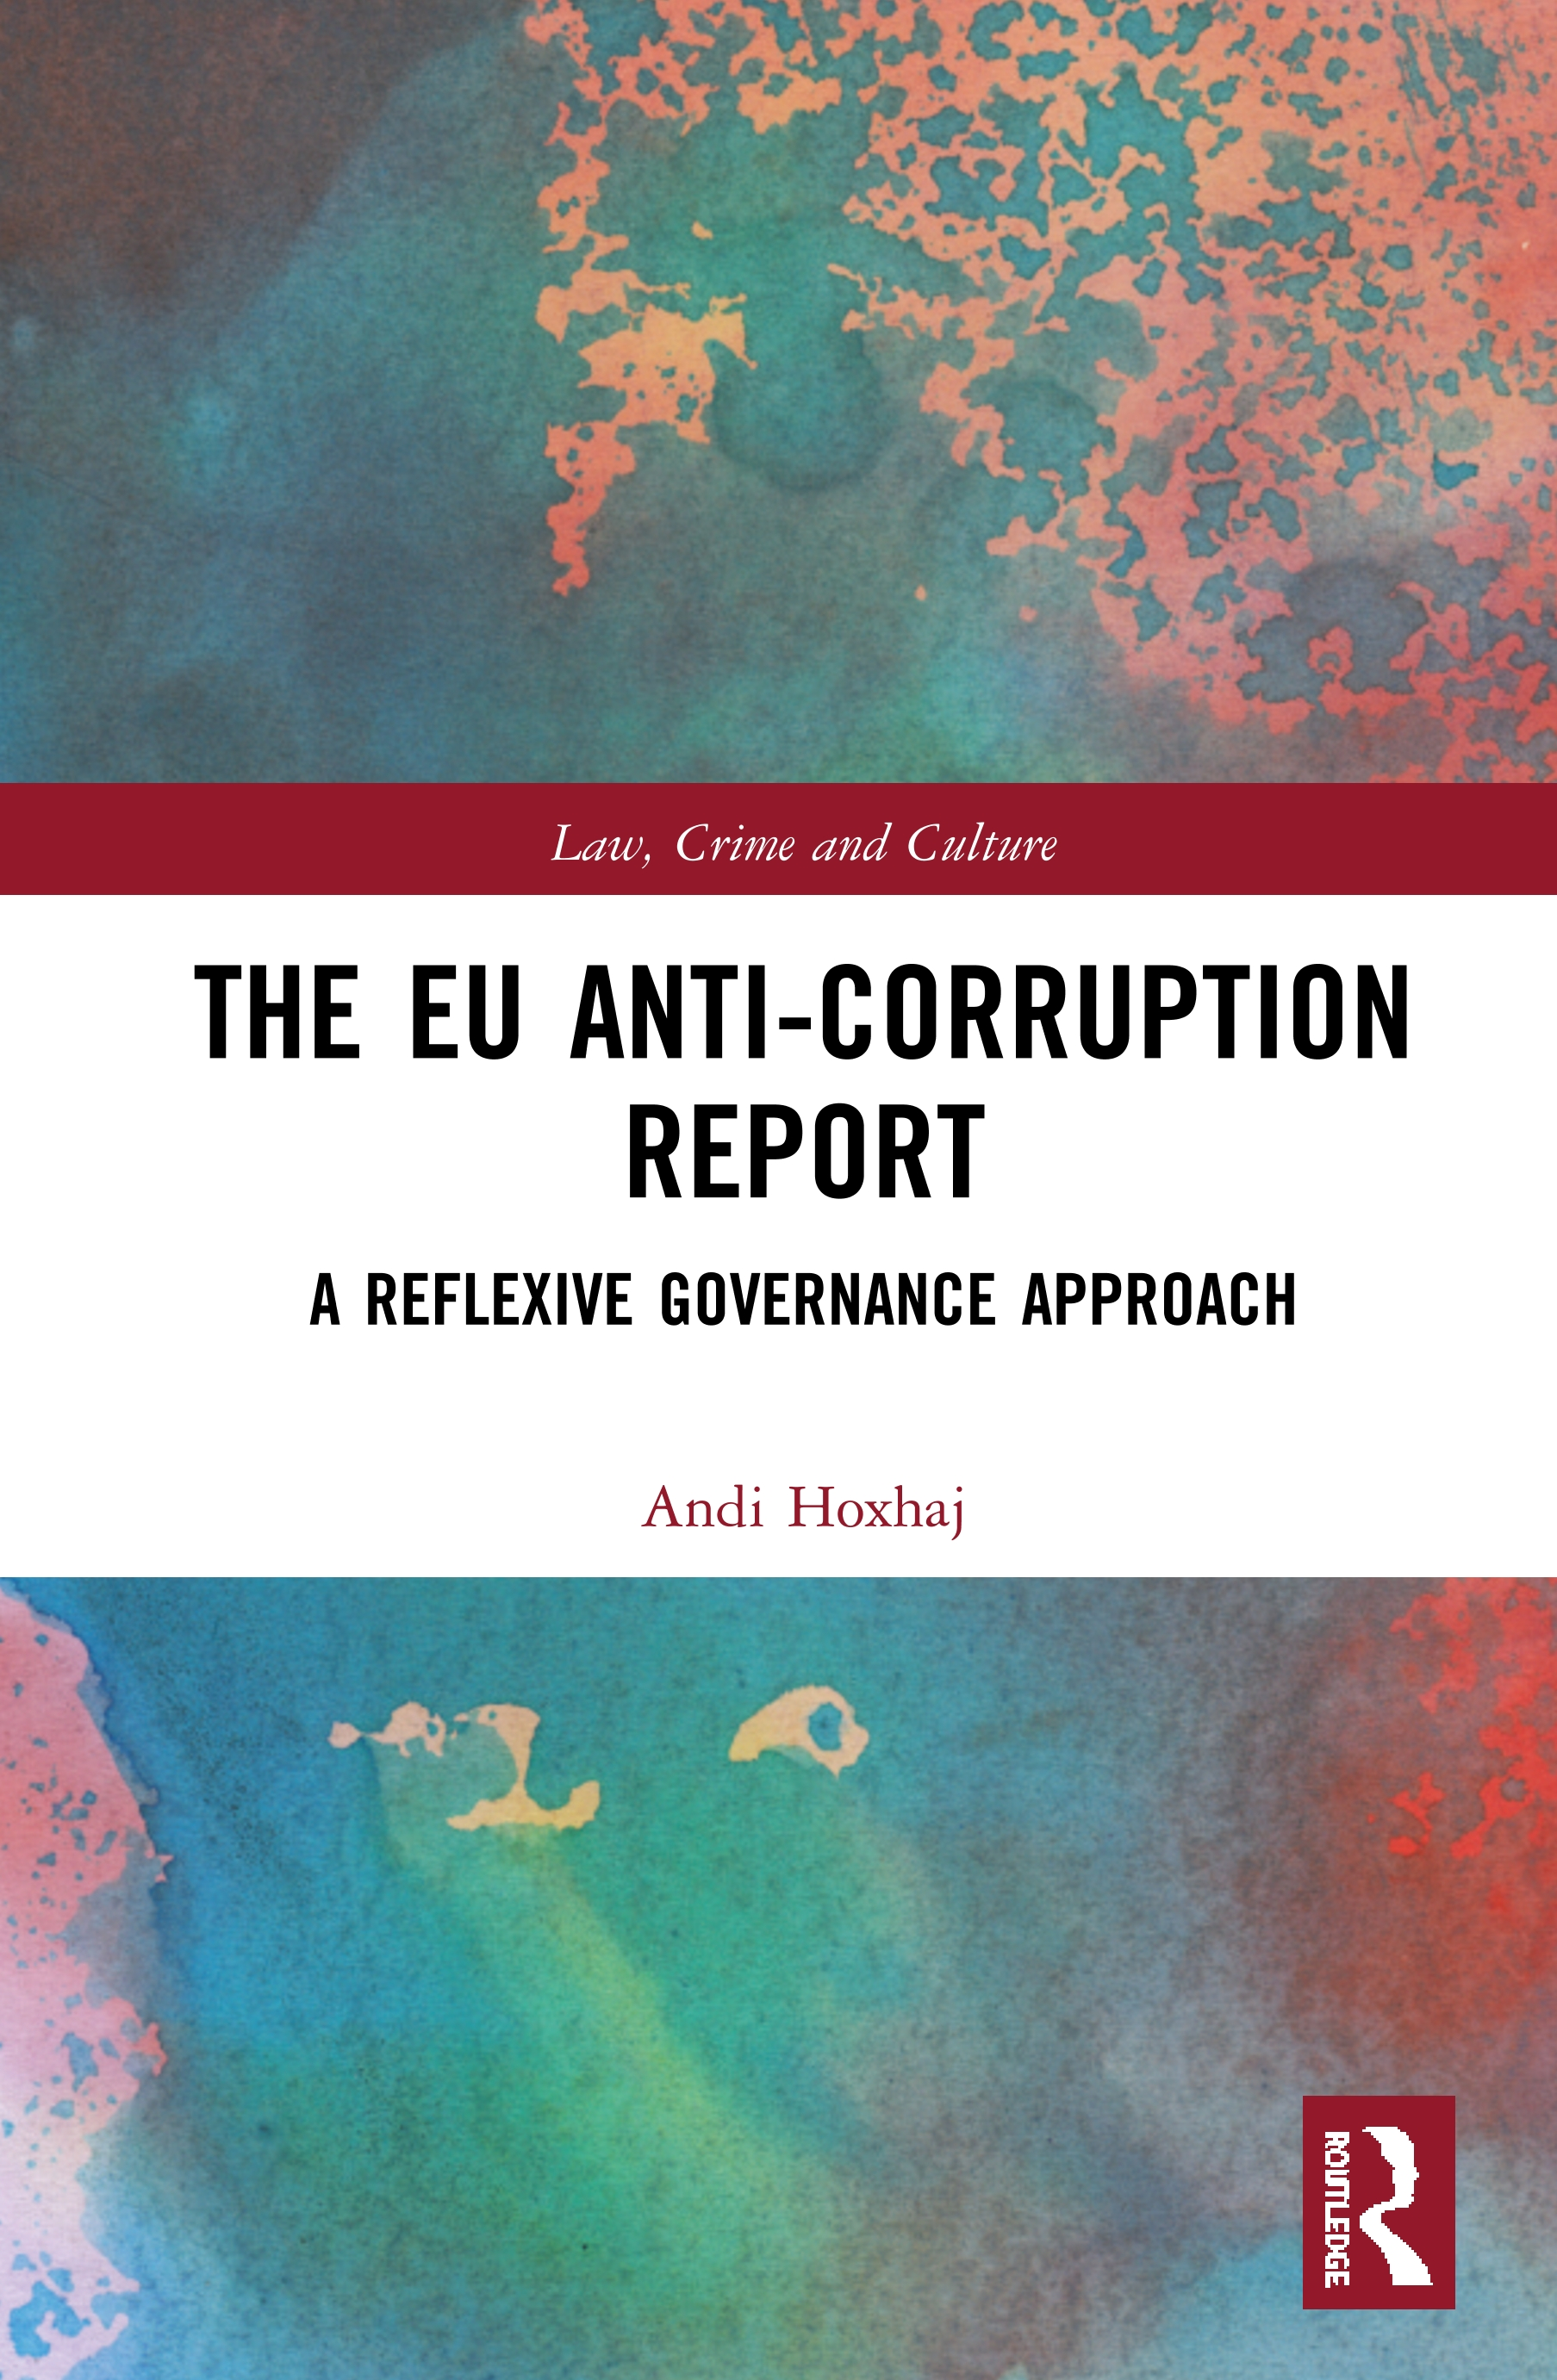 The EU Anti-Corruption Report: A Reflexive Governance Approach book cover